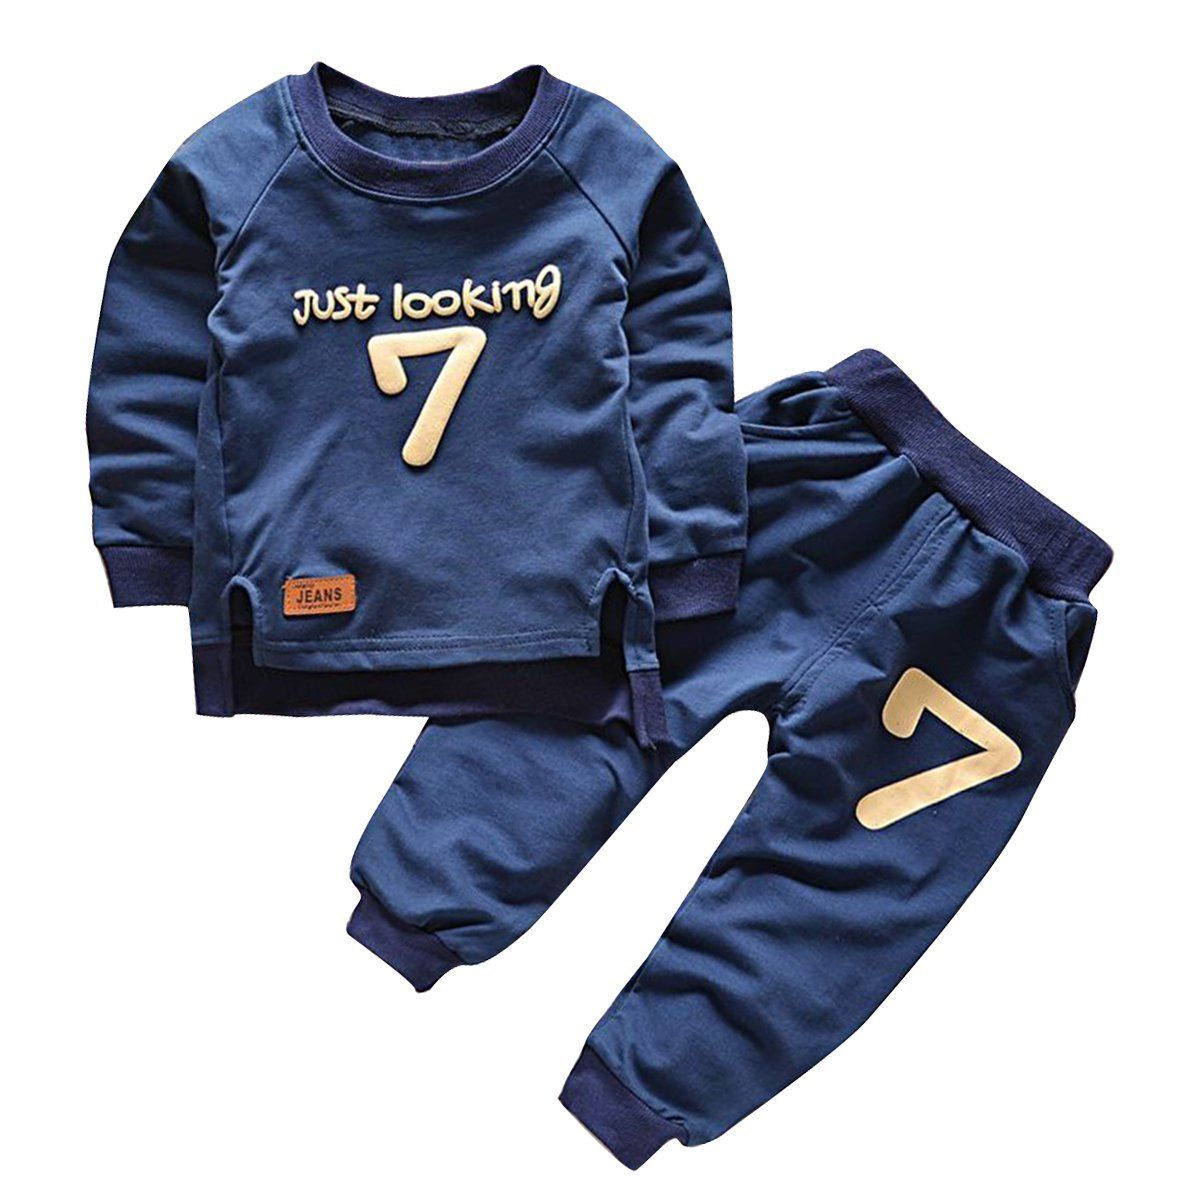 2pcs Baby Boy Clothes Set Long Sleeve Sweatshirts number 7 Tops Toddler Kids O neck Hoodies Long Pants casual Suit Outfits